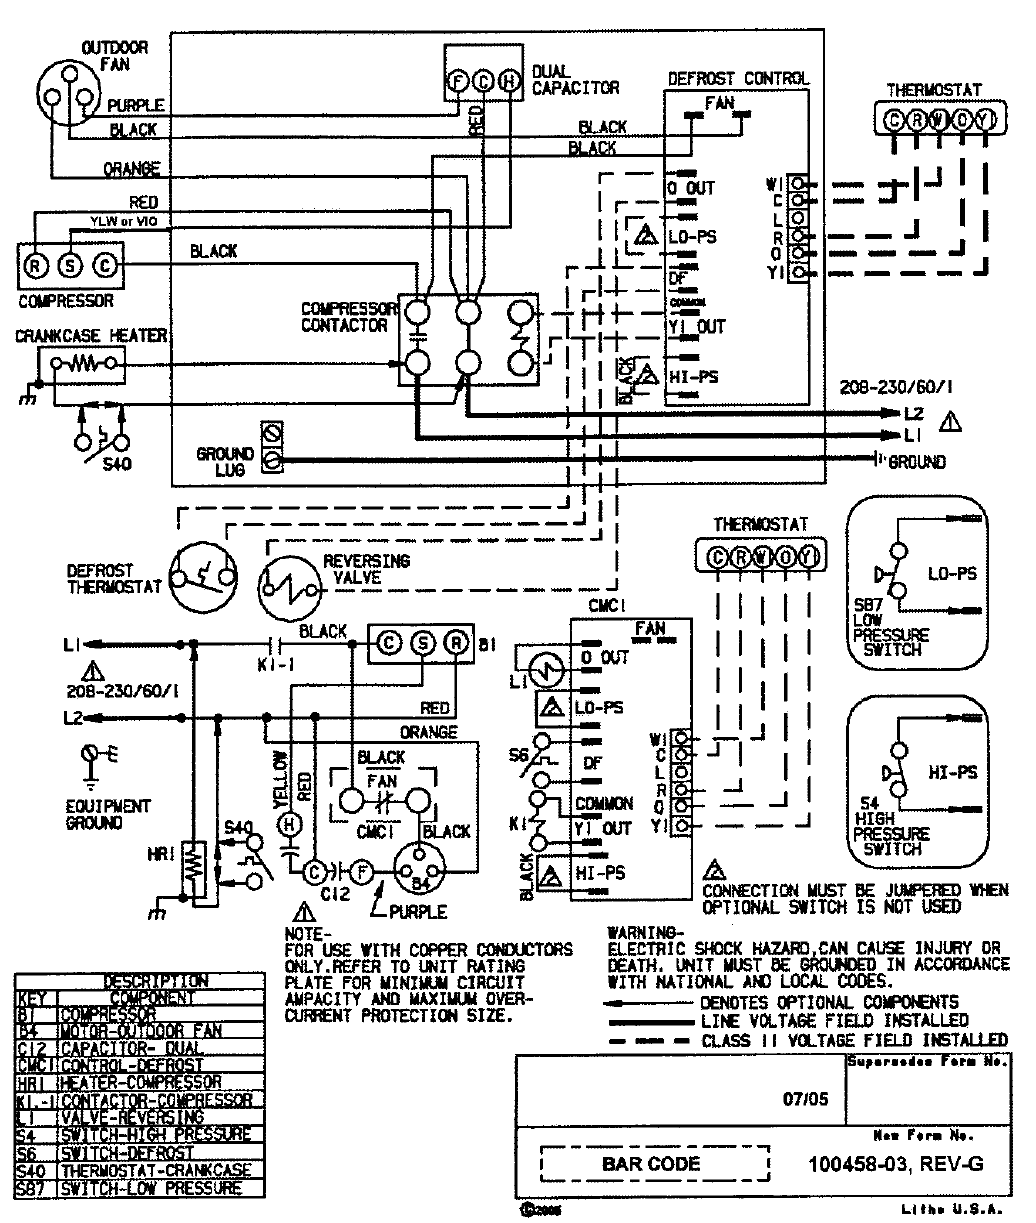 66a1938d e87a 8684 cde2 d0cfcc8a31fc bg9 page 9 of ducane (hvac) heat pump 2hp13 user guide manualsonline com ducane furnace wiring diagram at soozxer.org